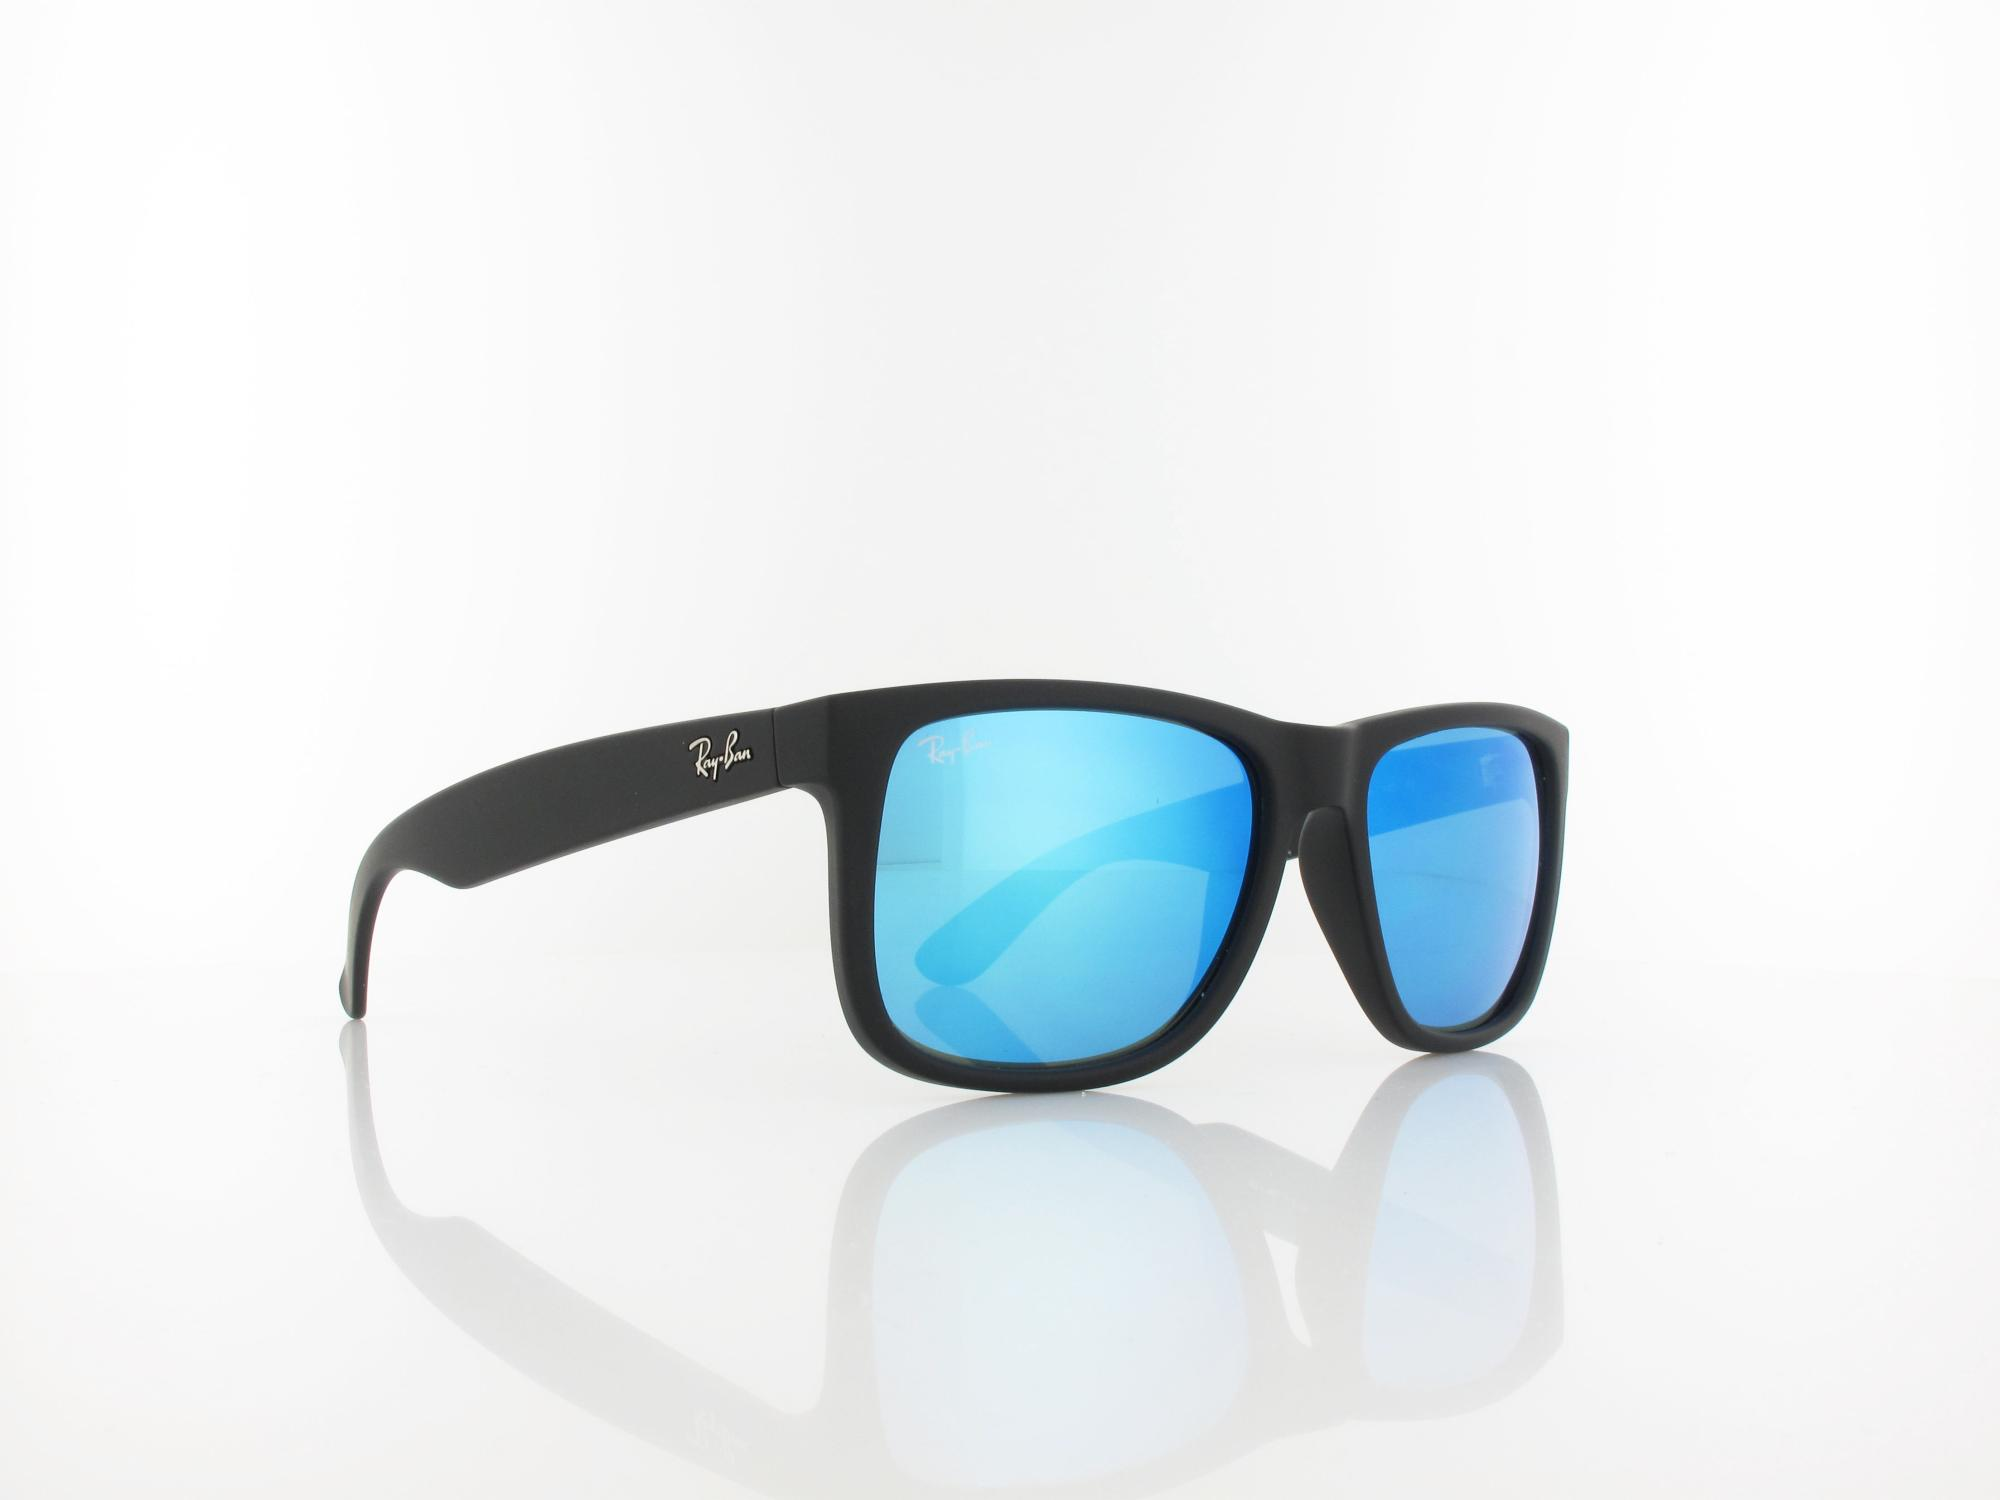 Ray Ban | Justin RB4165 622/55 54 | black rubber / green mirror blue